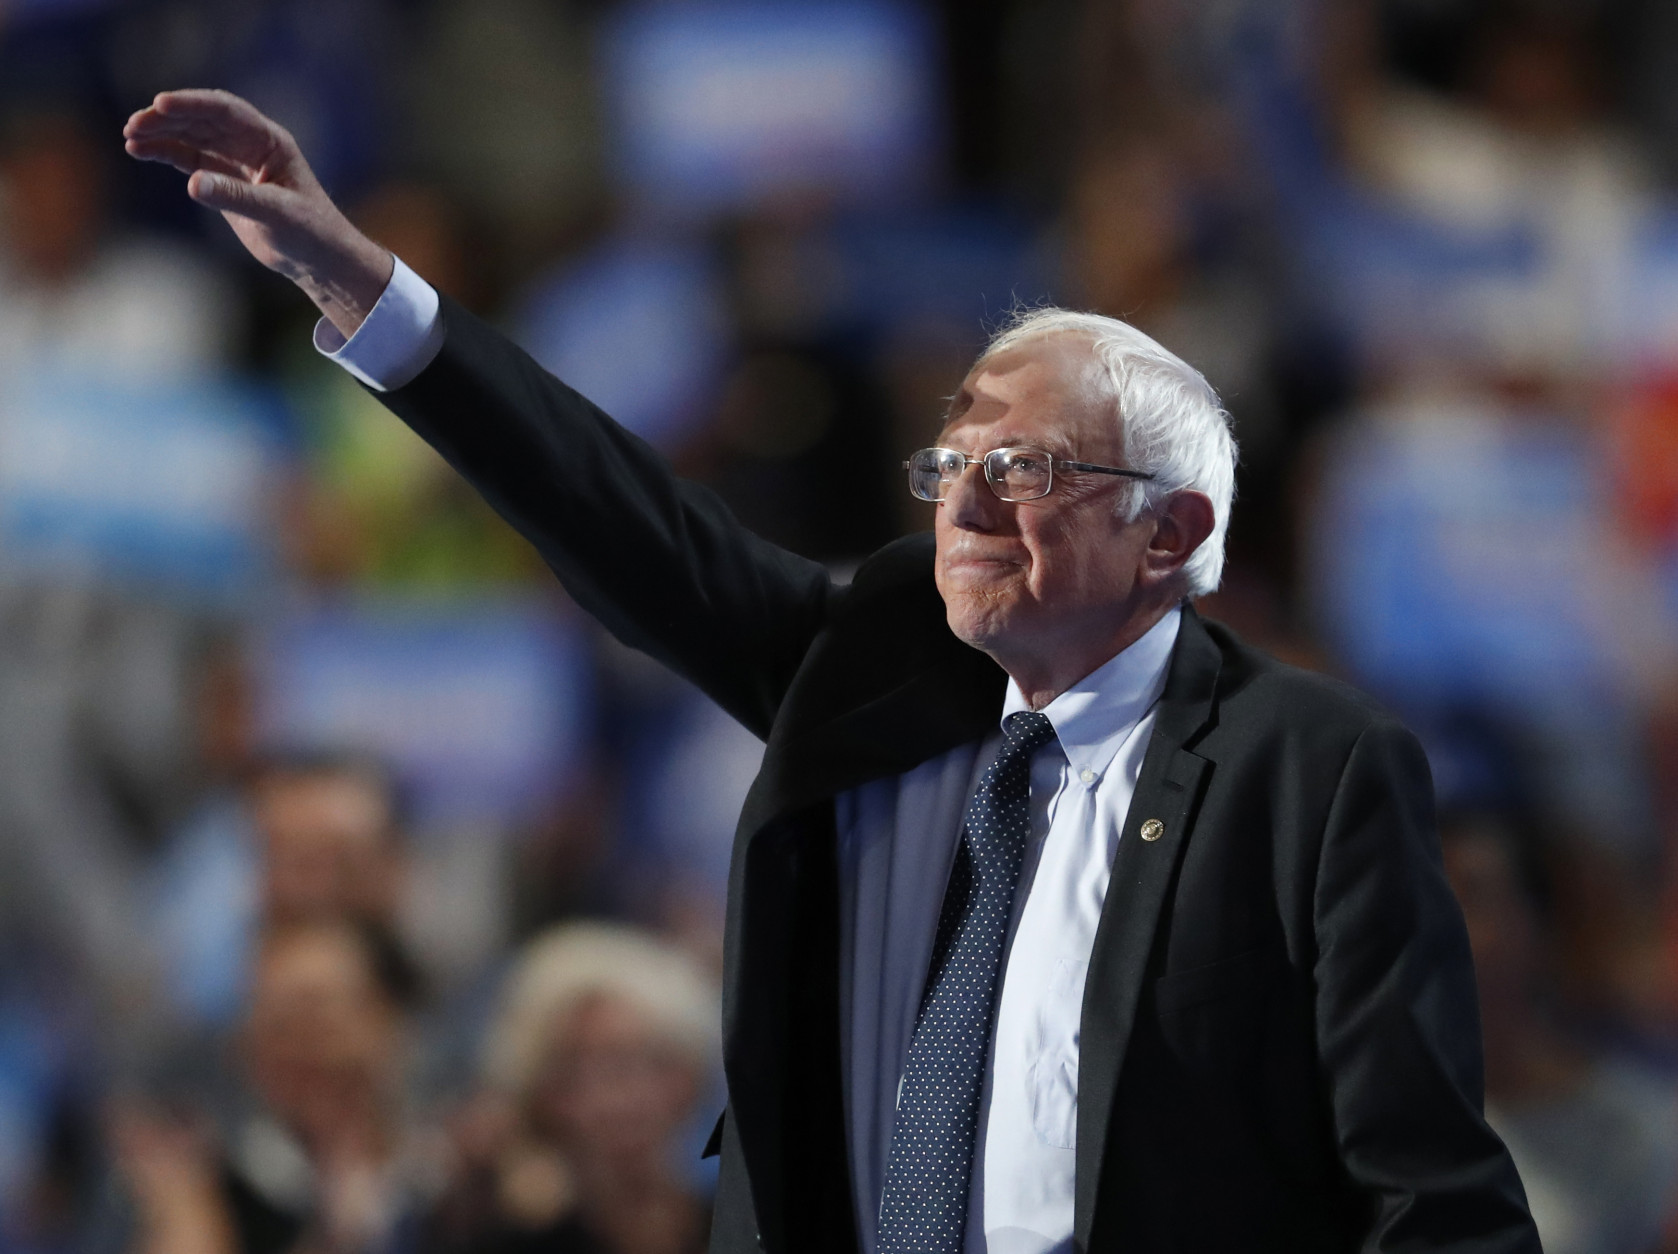 Former Democratic Presidential candidate, Sen. Bernie Sanders, I-Vt., takes the stage during the first day of the Democratic National Convention in Philadelphia , Monday, July 25, 2016. (AP Photo/Paul Sancya)